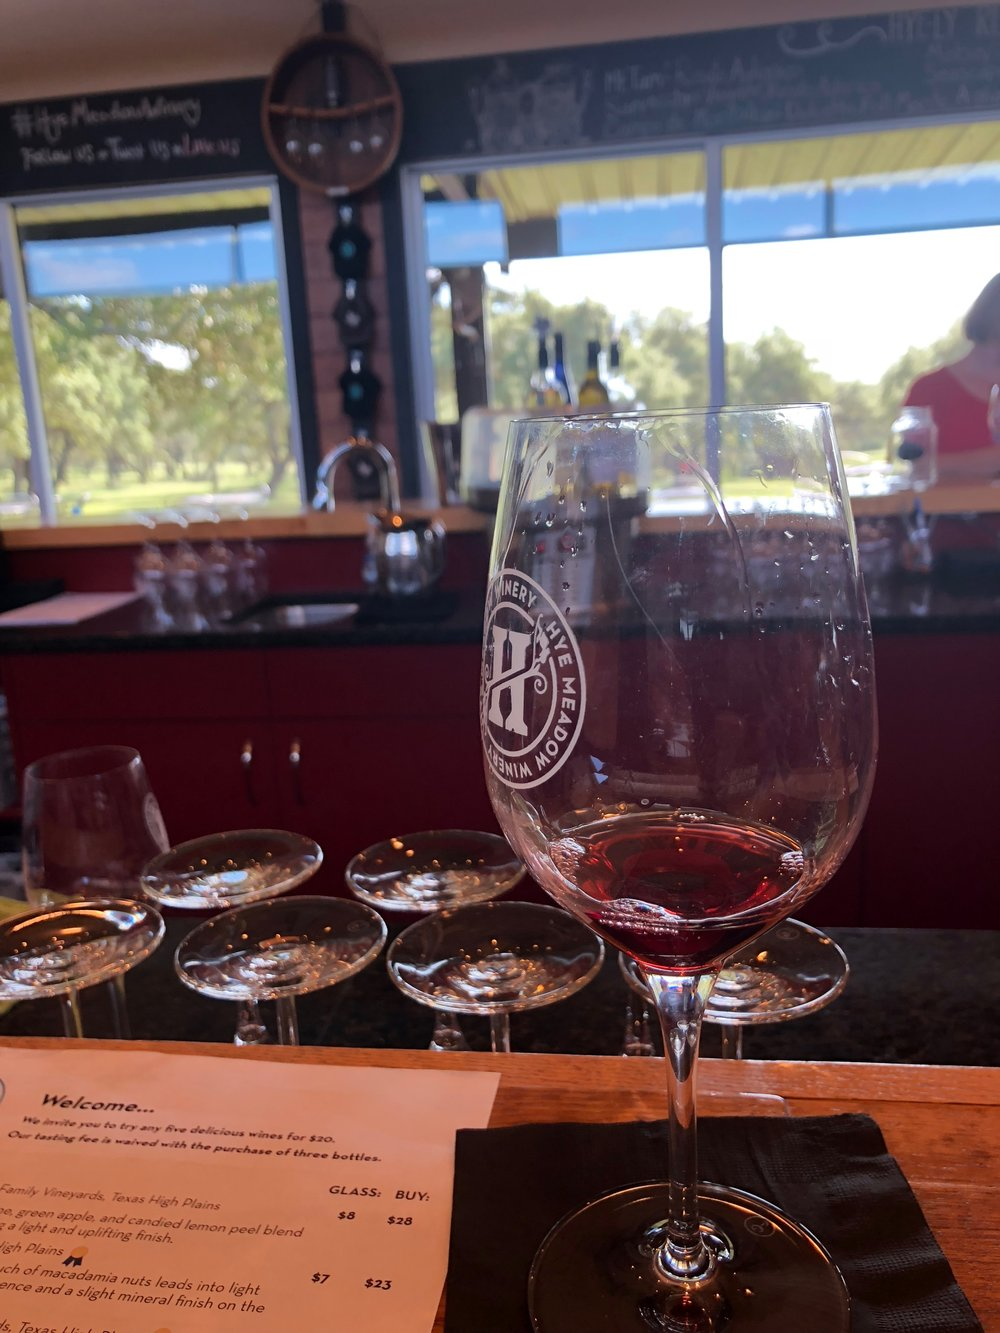 Hye Mixed Tour - Hye Meadow WineryHye Market (lunch not included)Hye RumGarrison Brothers Distillery- Bourbon tour + tasting included, pending availability$140/person15% gratuity not included.